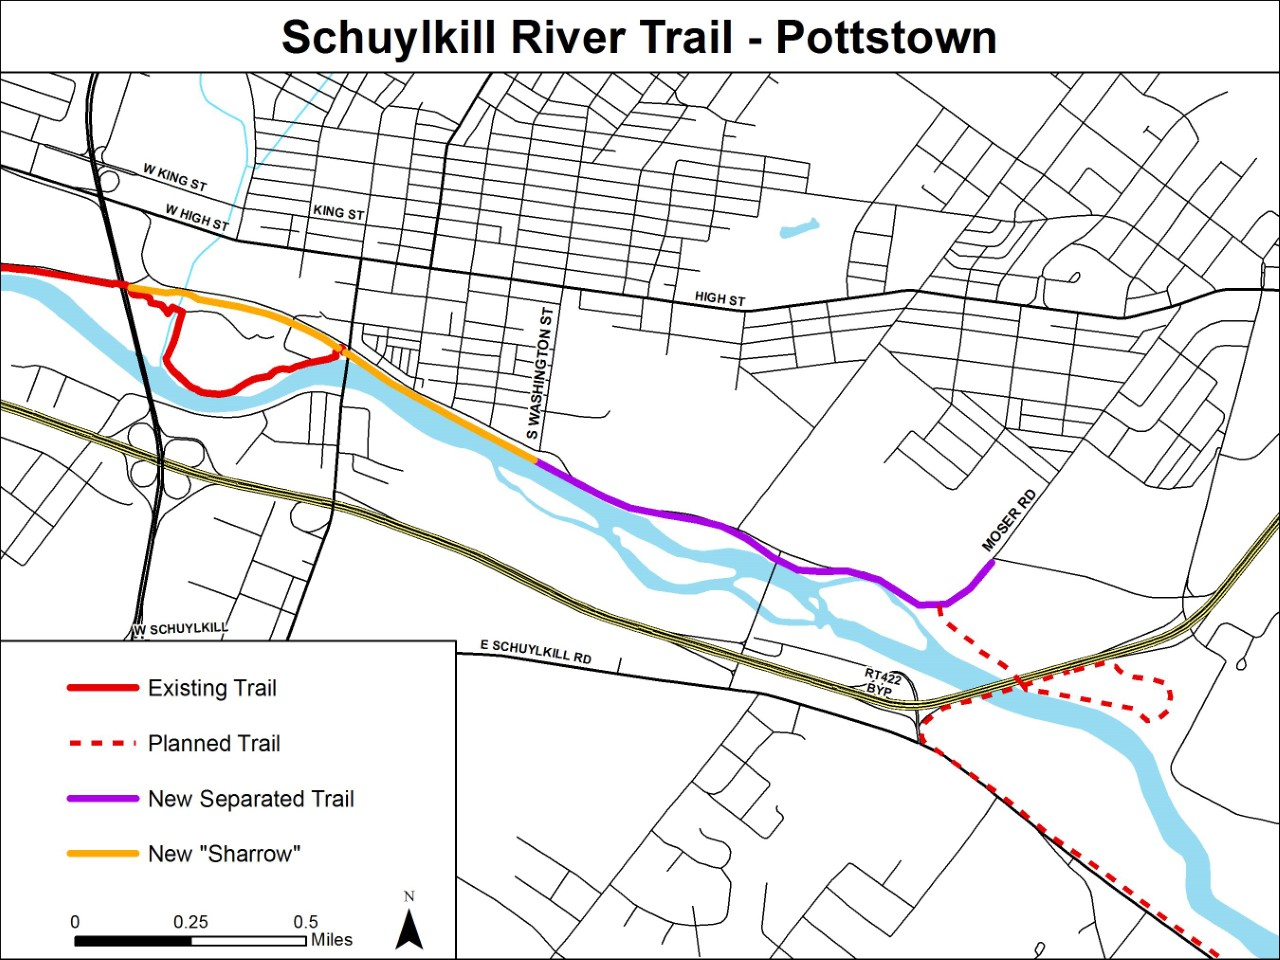 Construction Begins on New Portion of Schuylkill River Trail in Pottstown